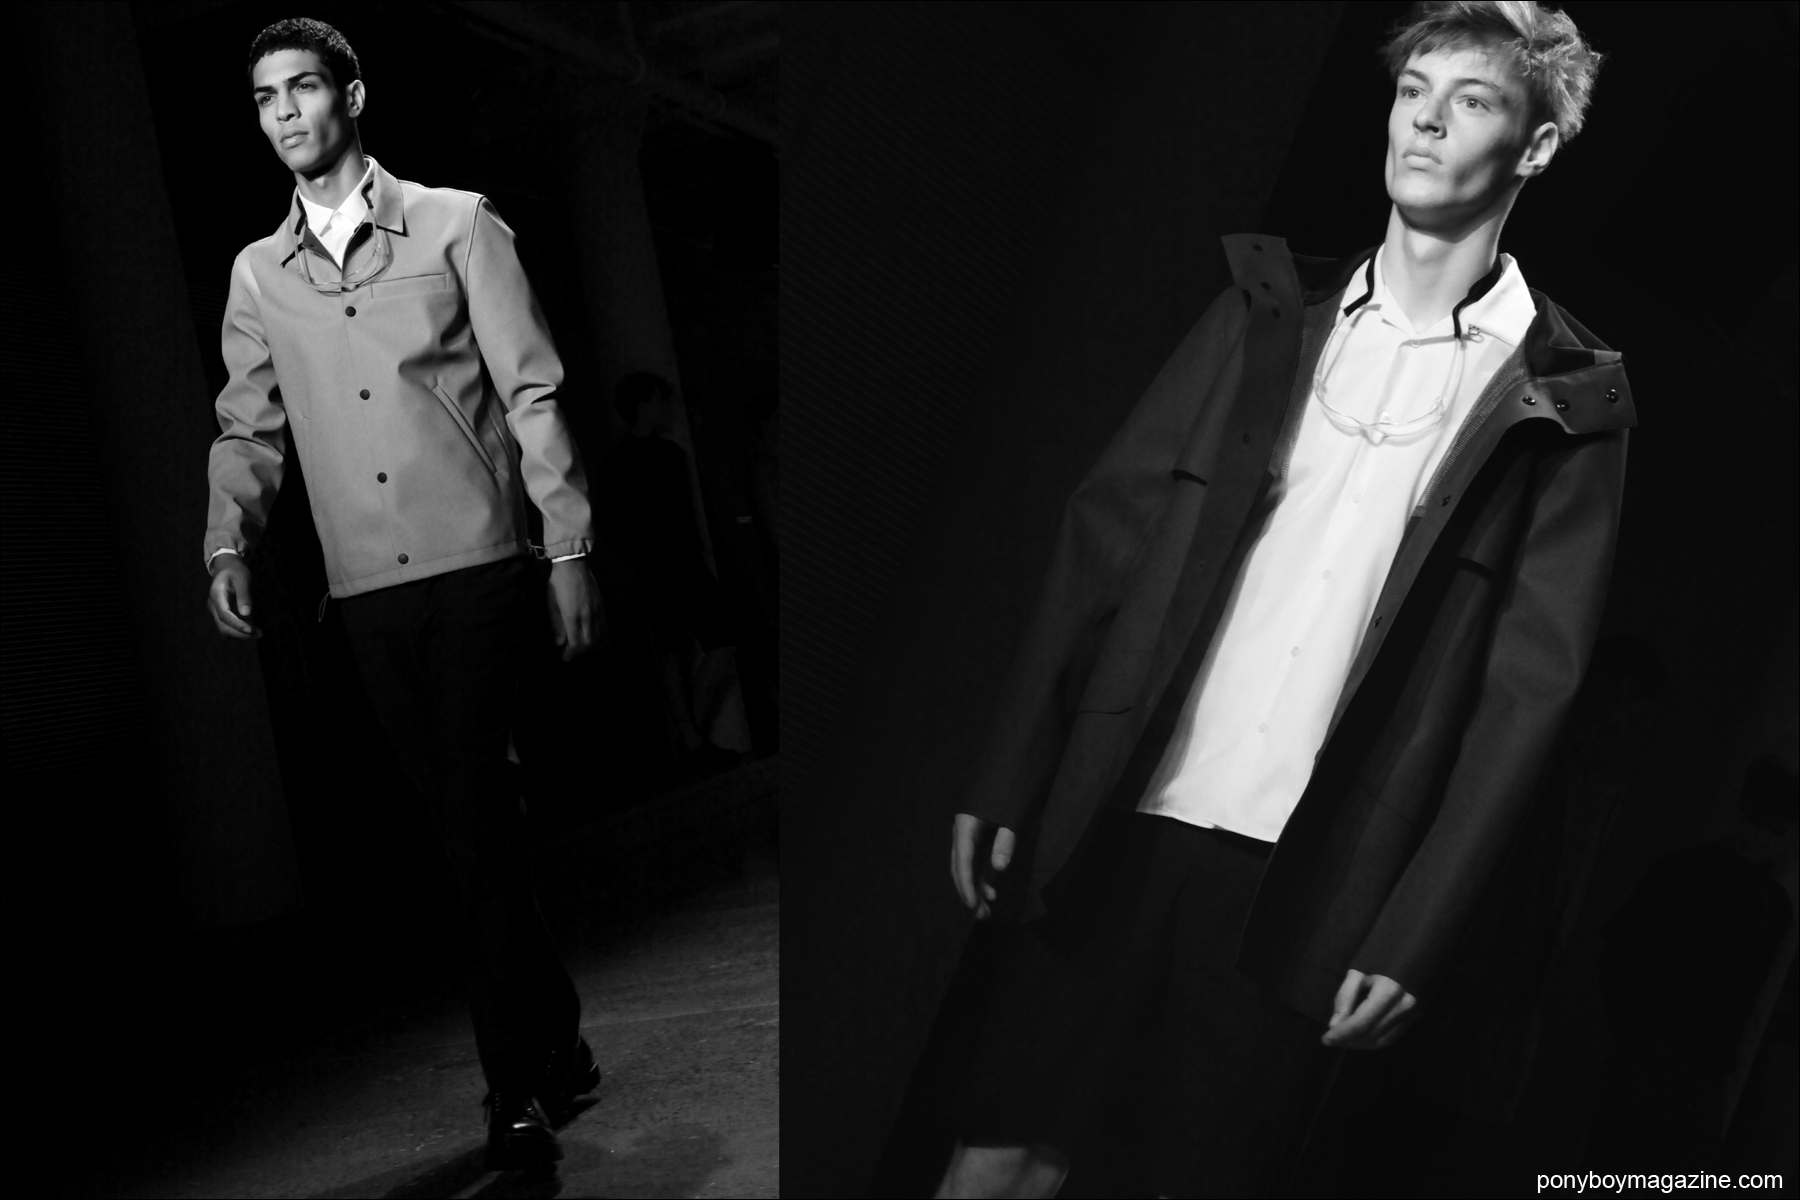 Male models Geron McKinley and Roberto Sipos walk the runway for Patrik Ervell Spring/Summer 2015 at Milk Studios NY. Photographs by Alexander Thompson for Ponyboy Magazine.